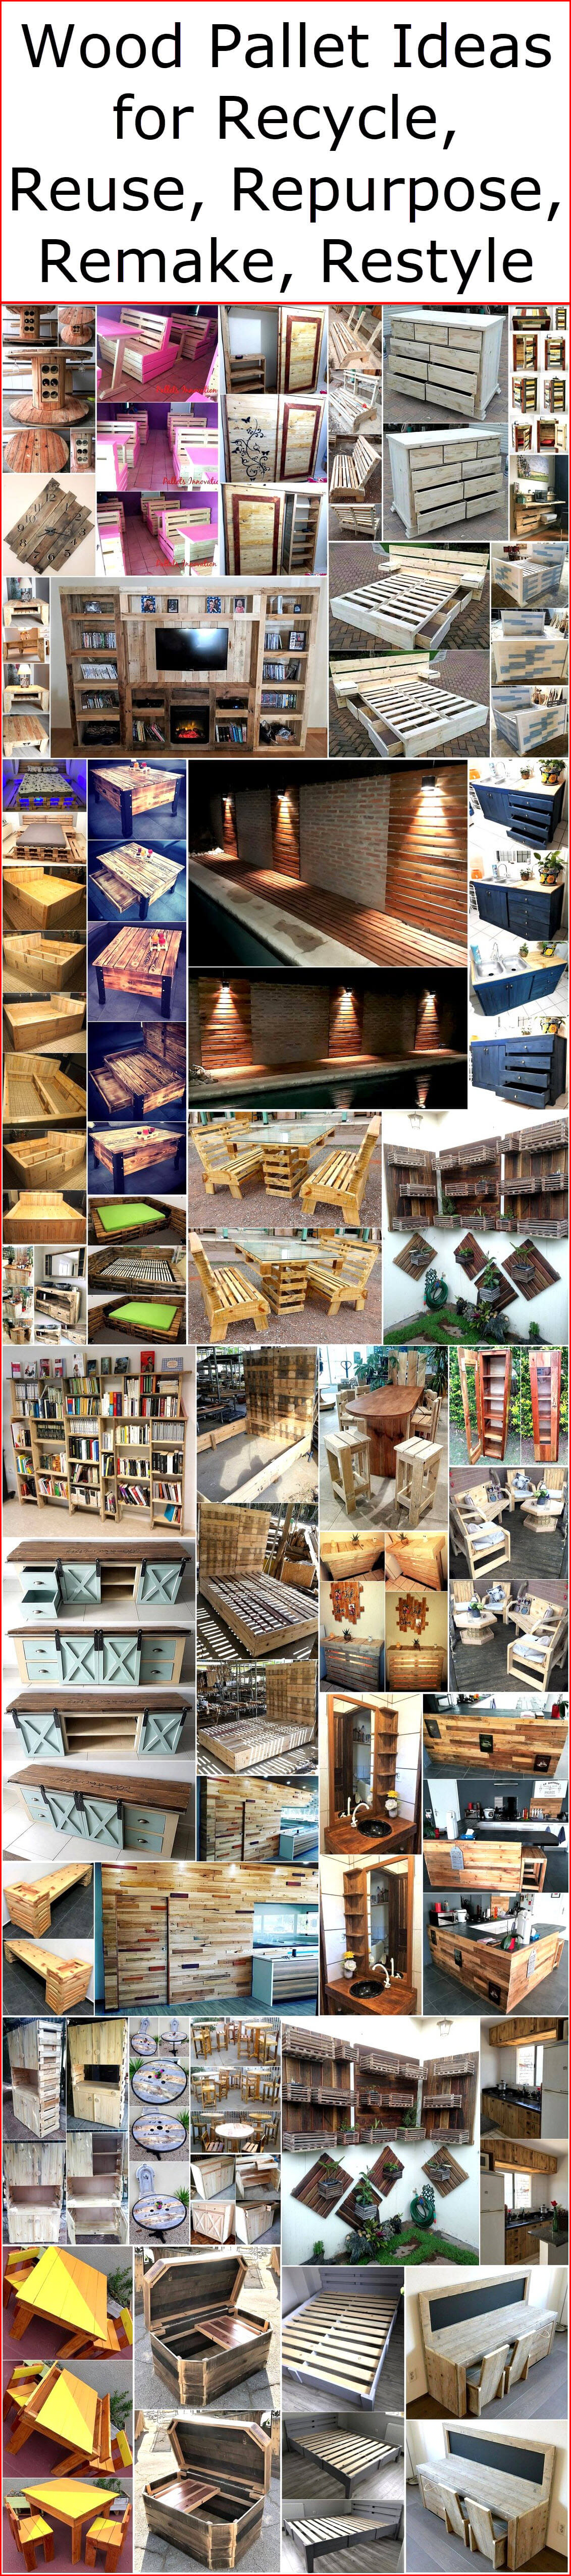 Wood Pallet Ideas For Recycle, Reuse, Repurpose, Remake, Restyle